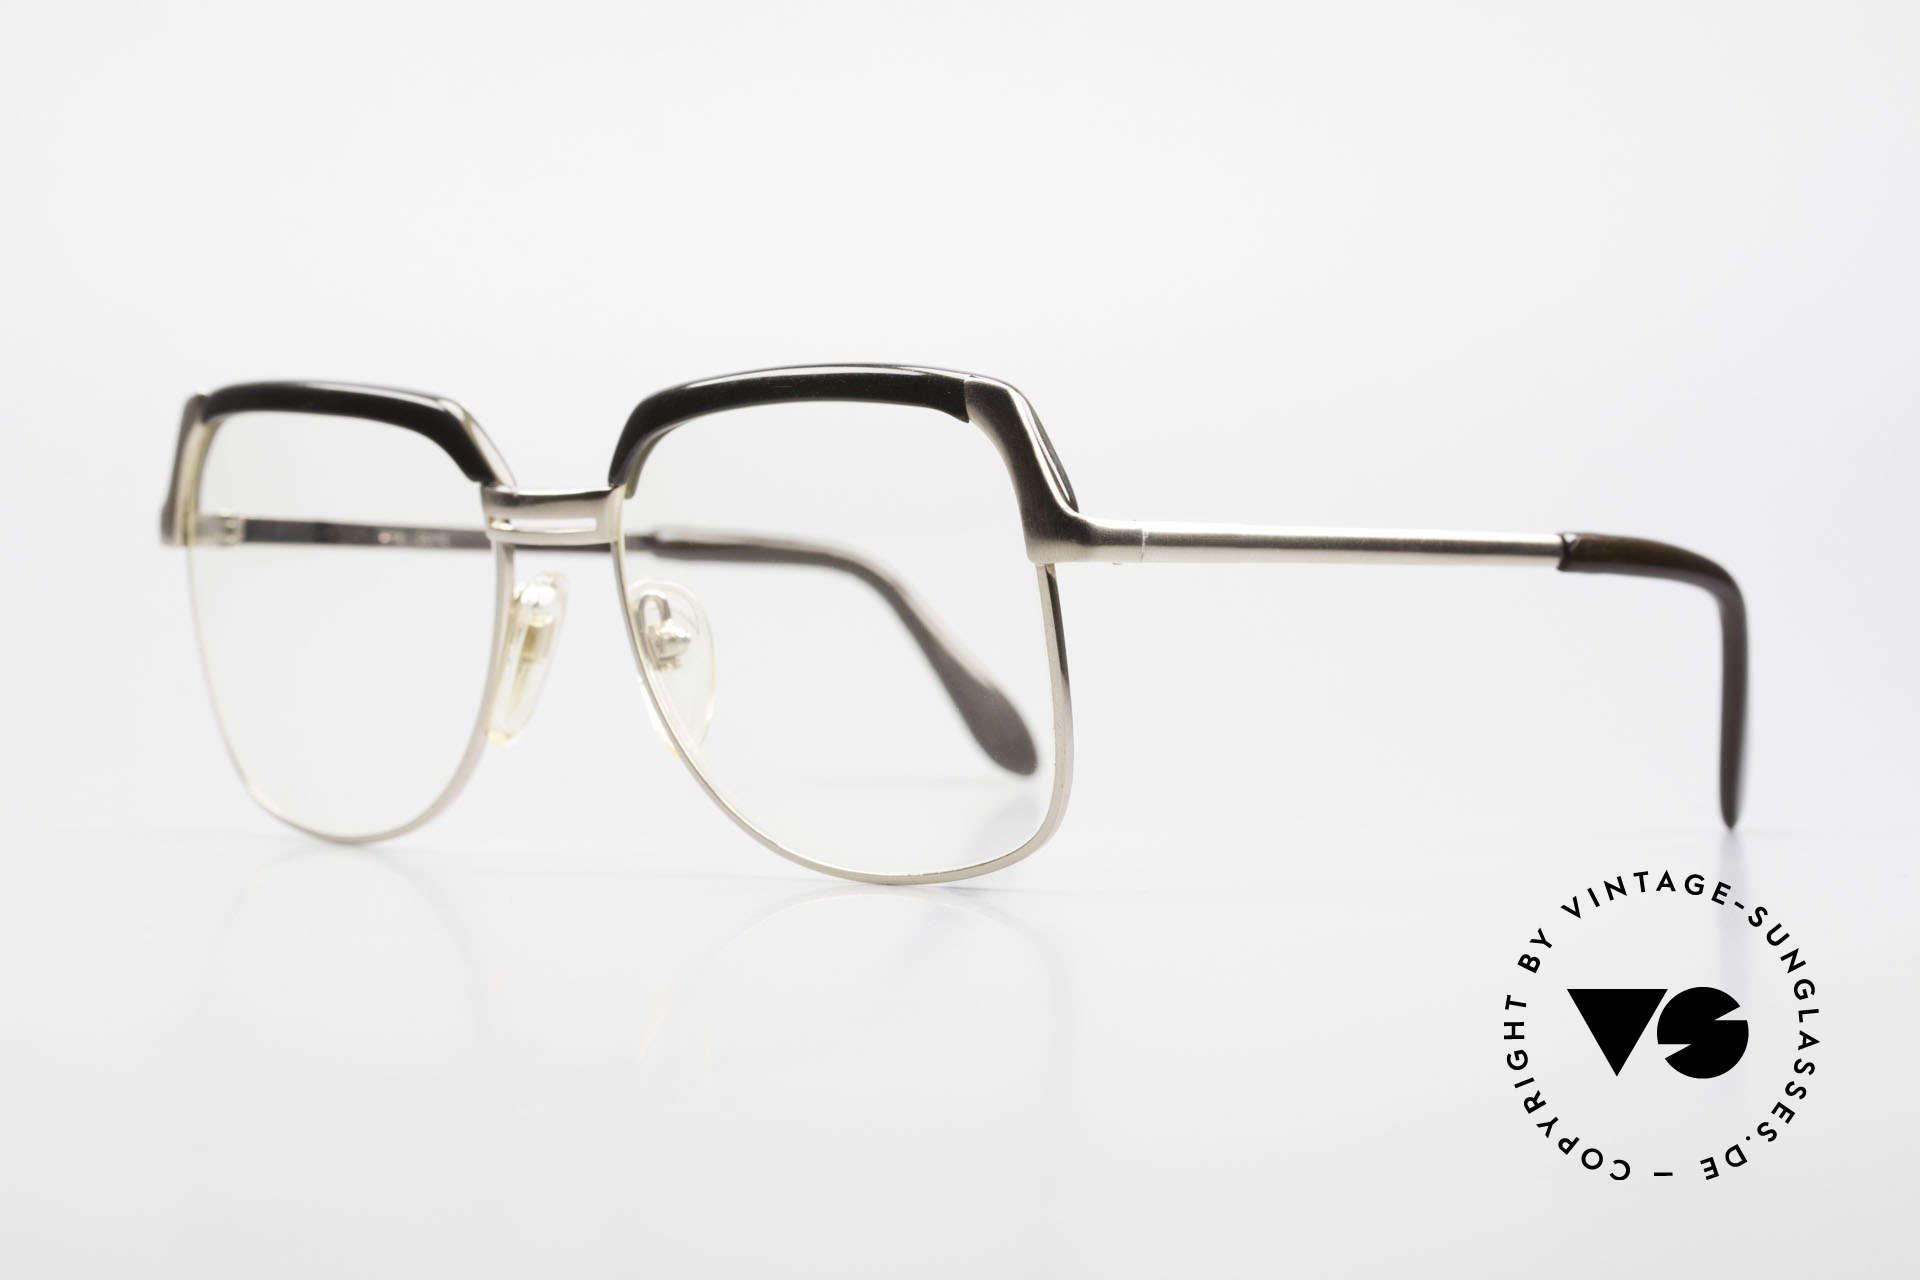 Bausch & Lomb 418 Gold Filled 80's Combi Frame, the special feature: frame has a portion of real gold, Made for Men